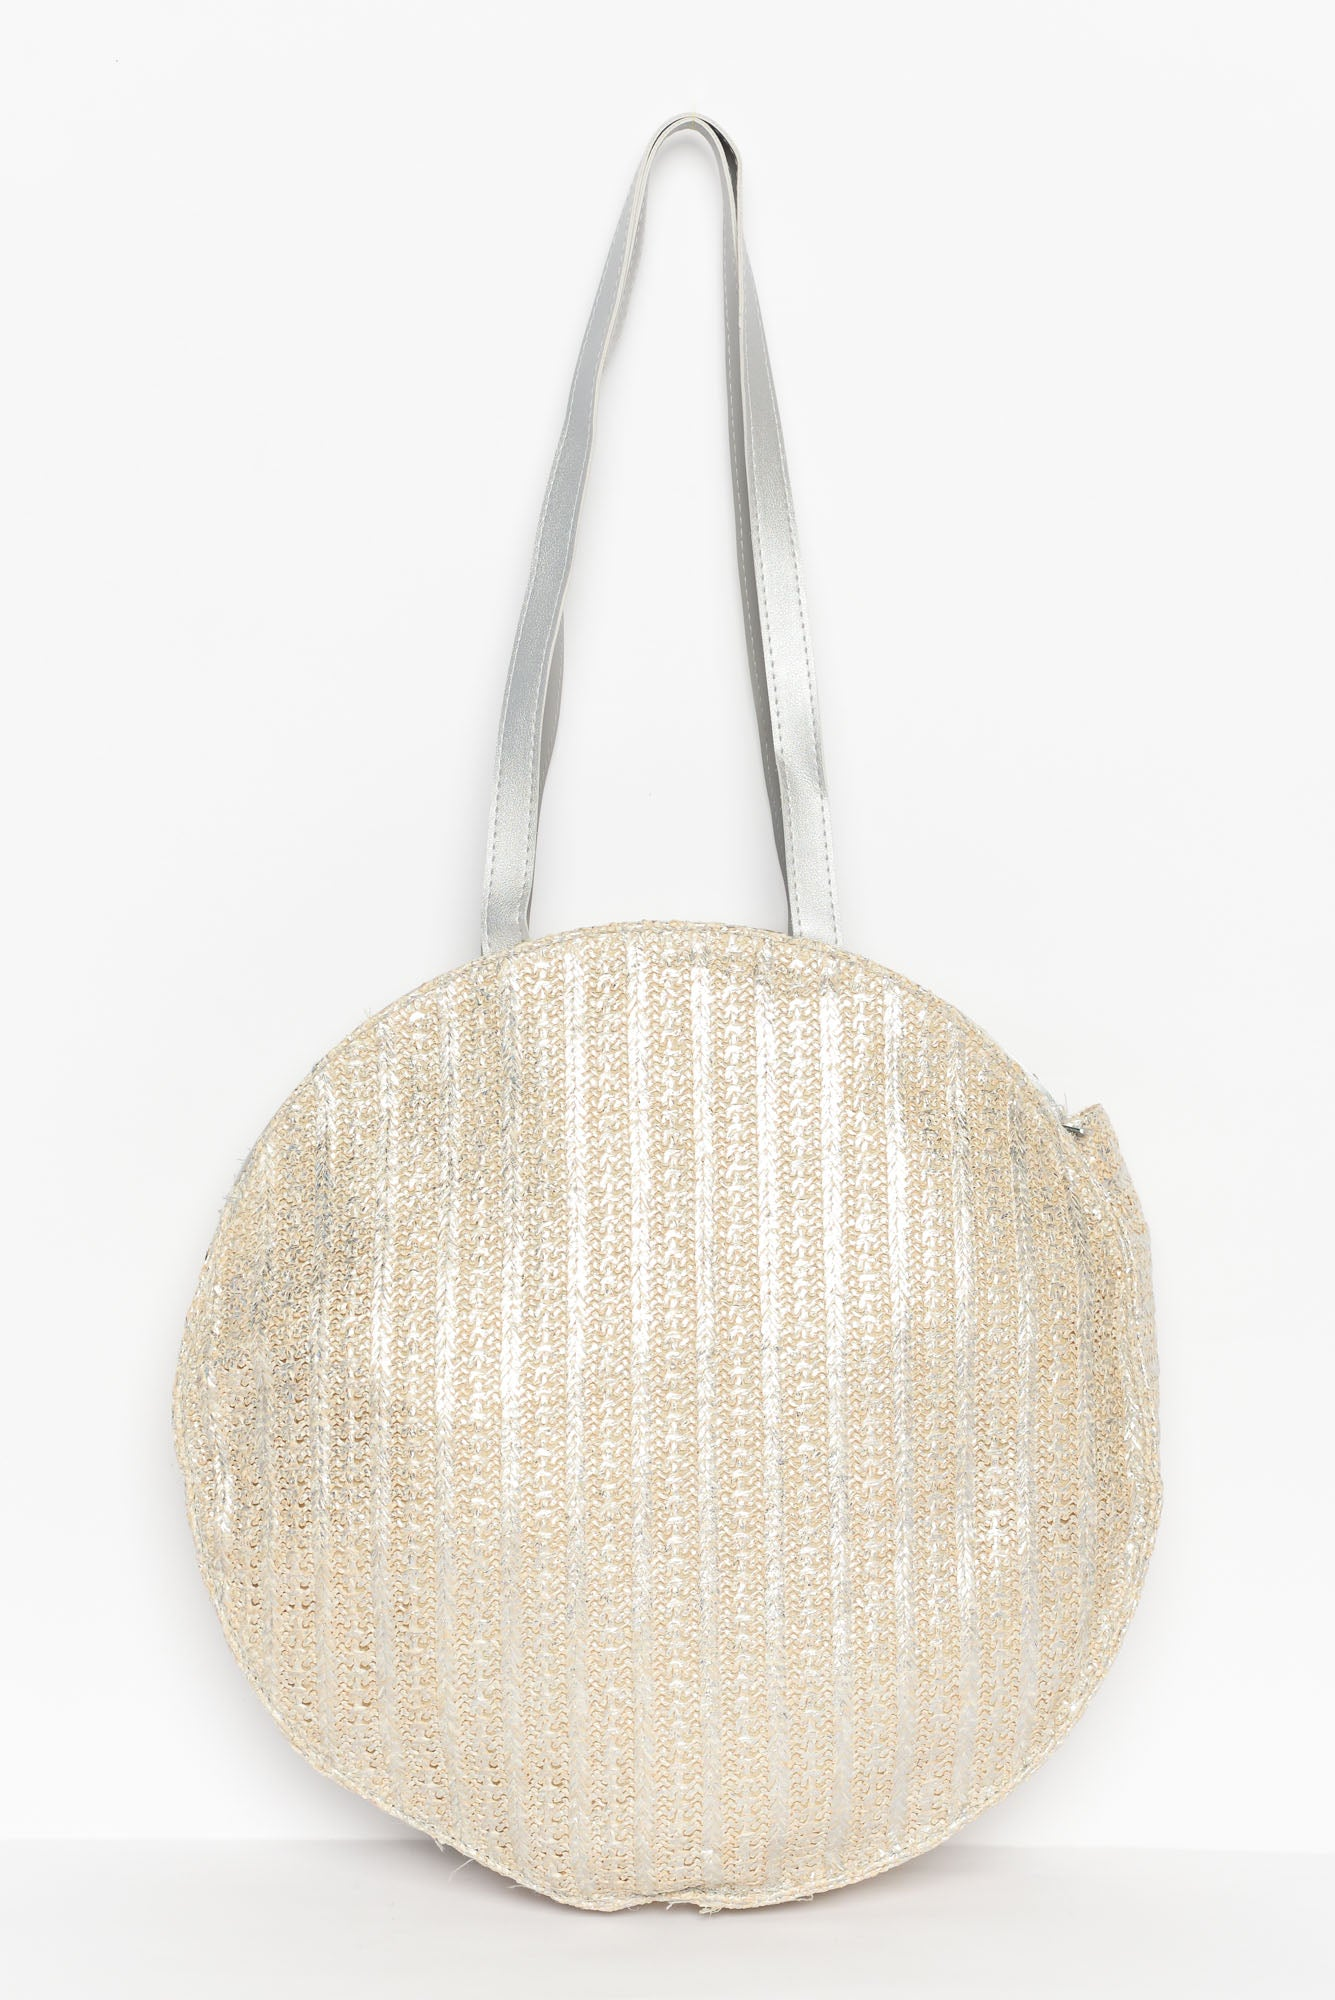 Sara Silver Metallic Large Tote Bag